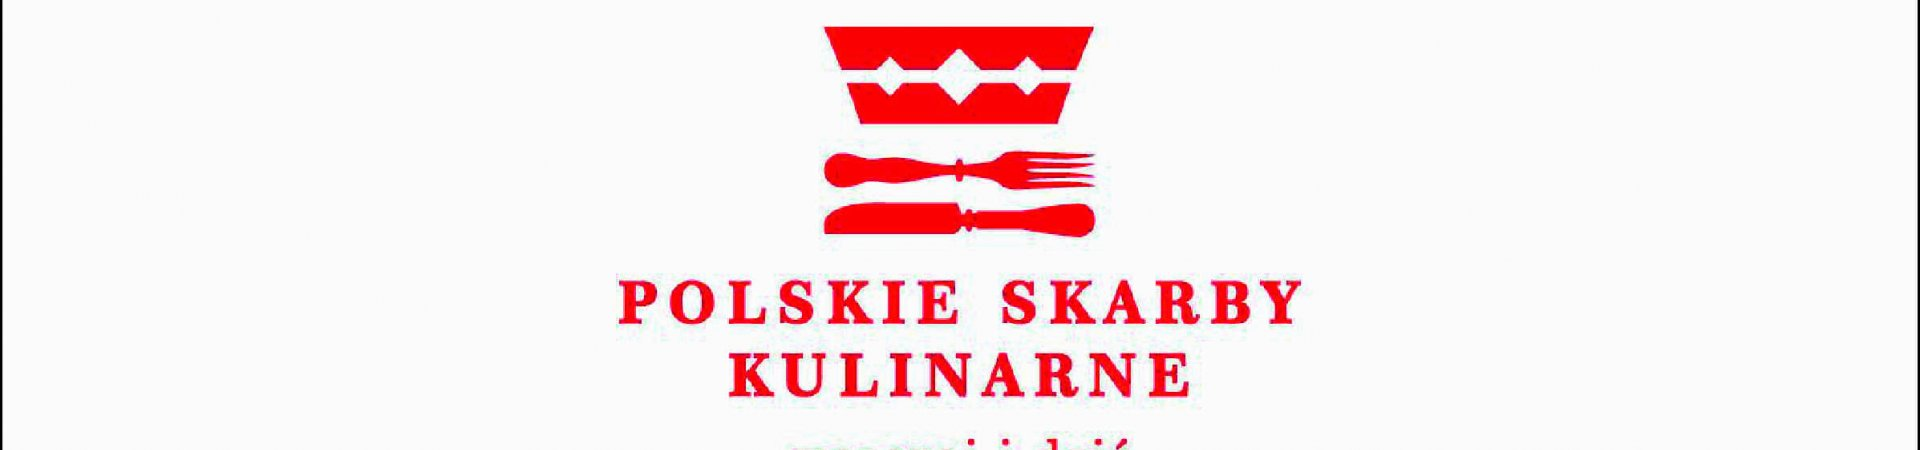 Culinary Union of Poland